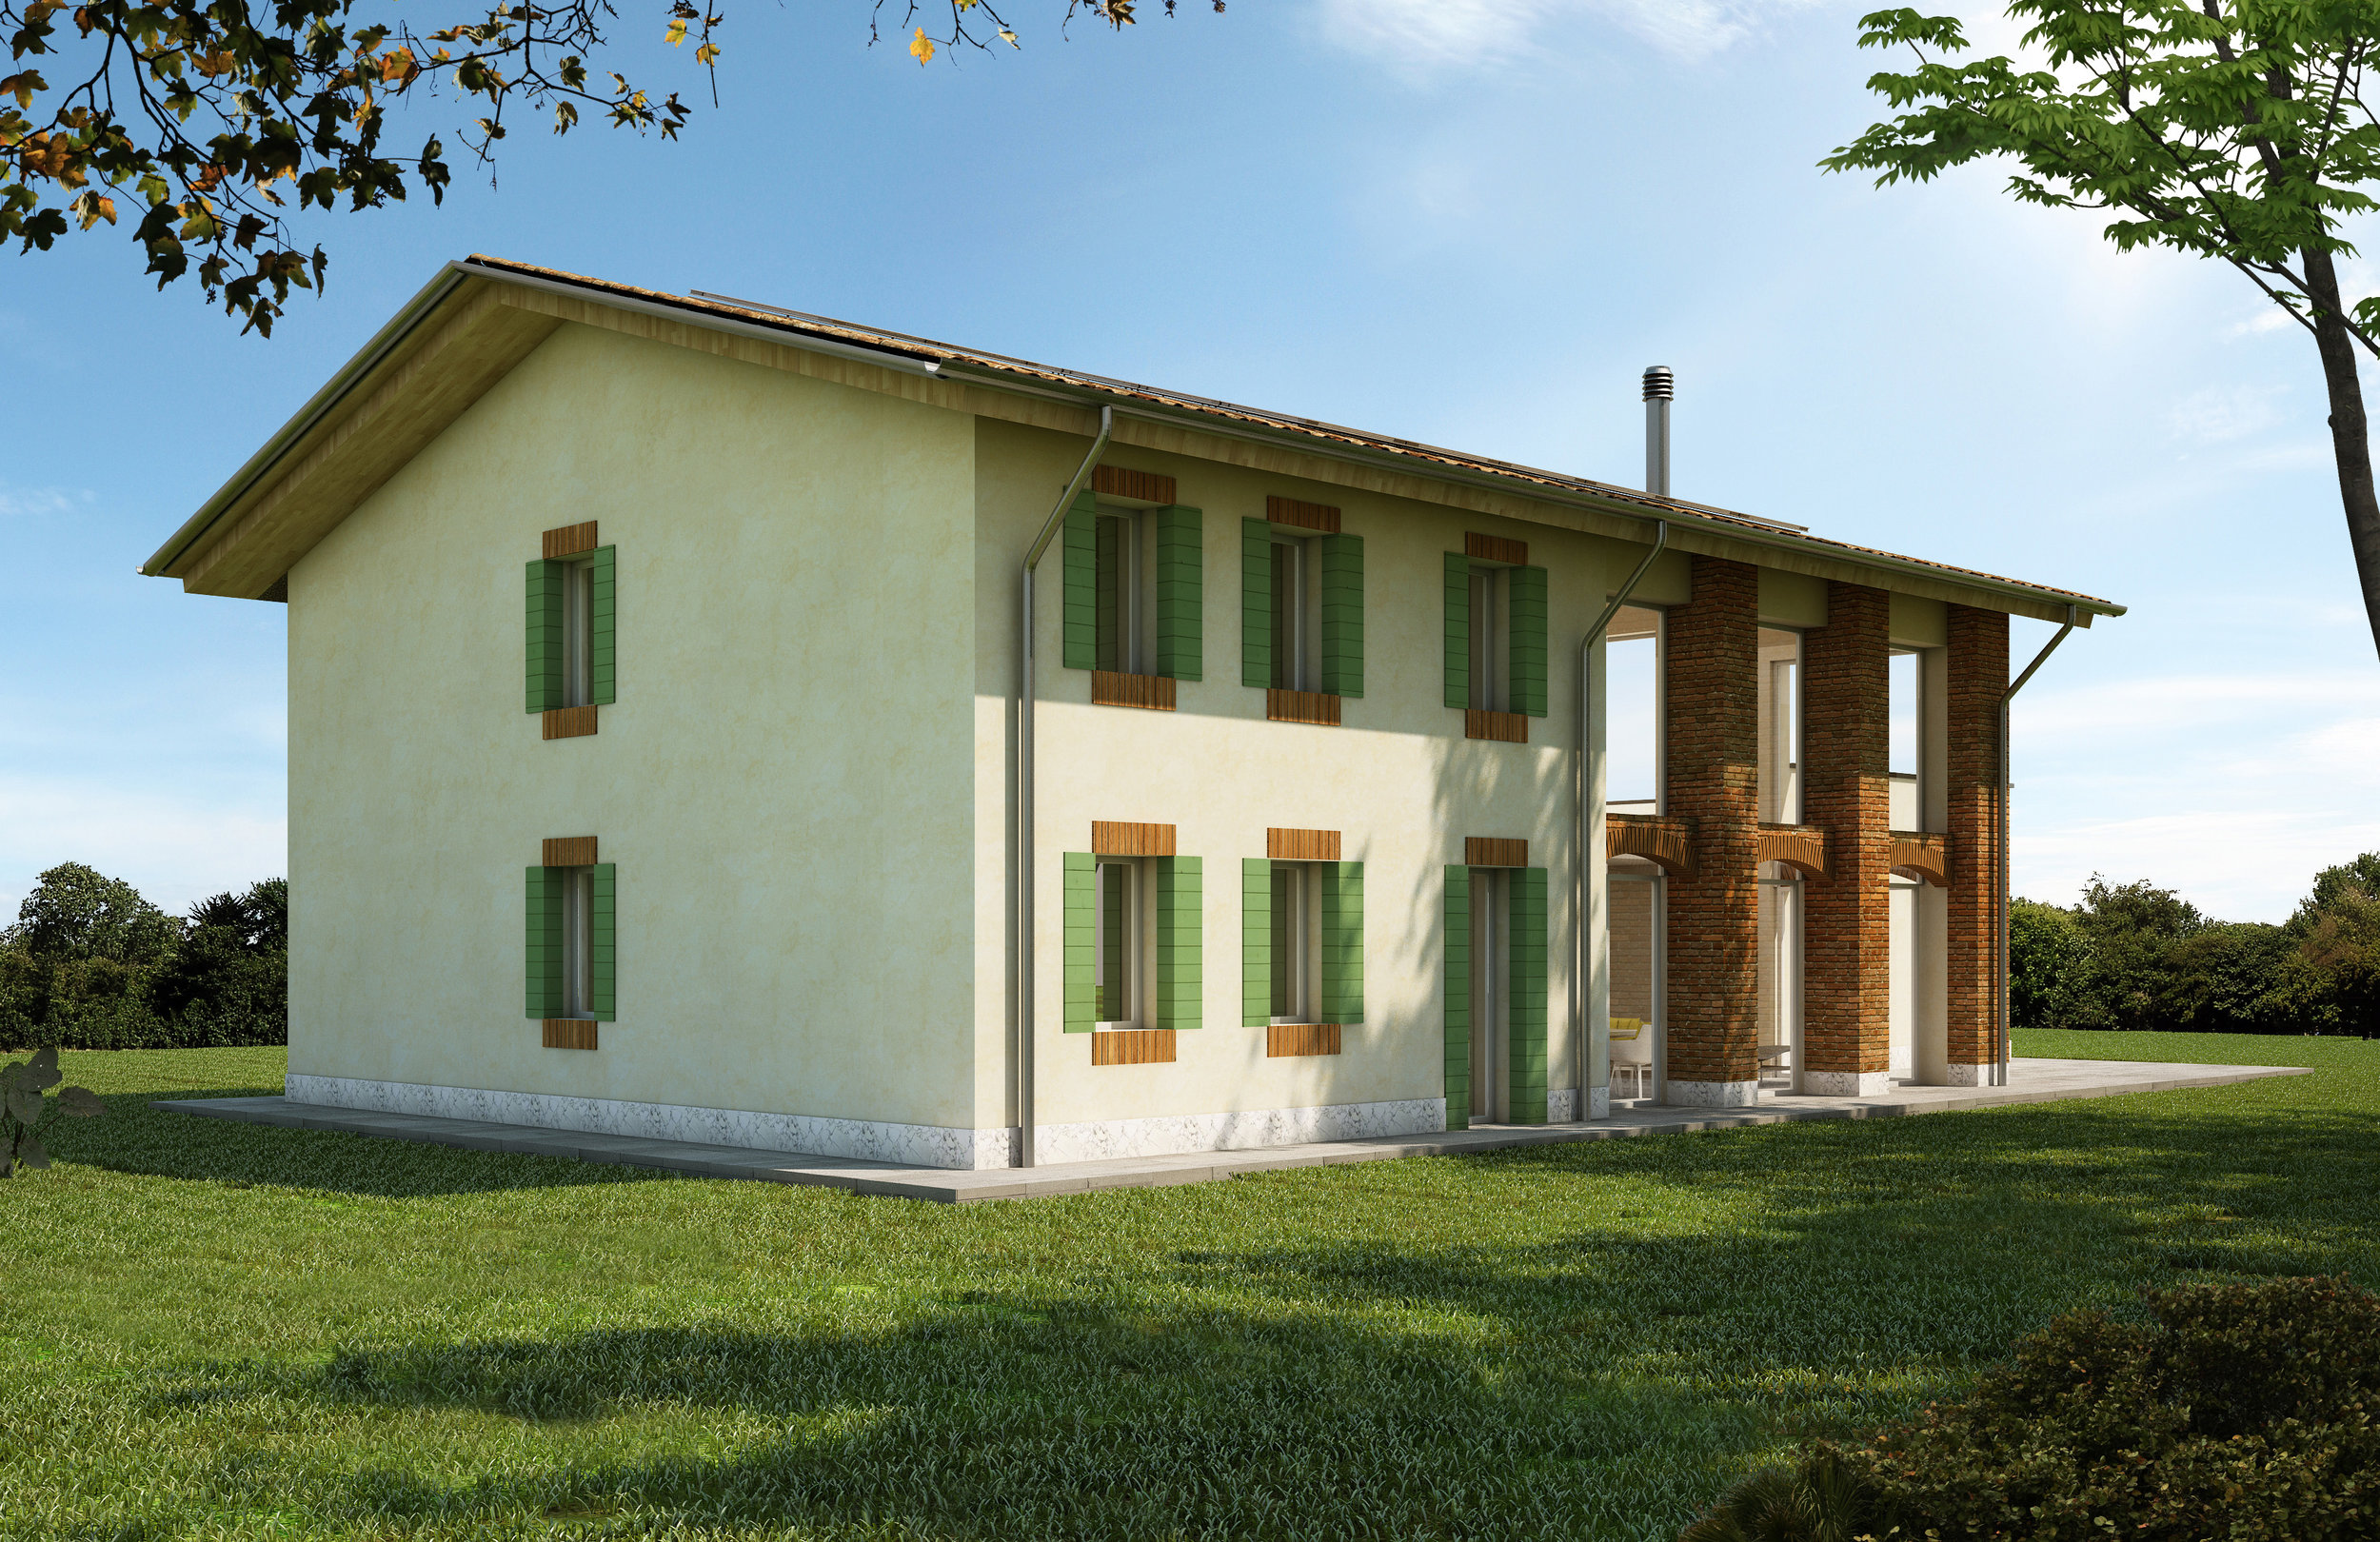 the rural house: selvabella